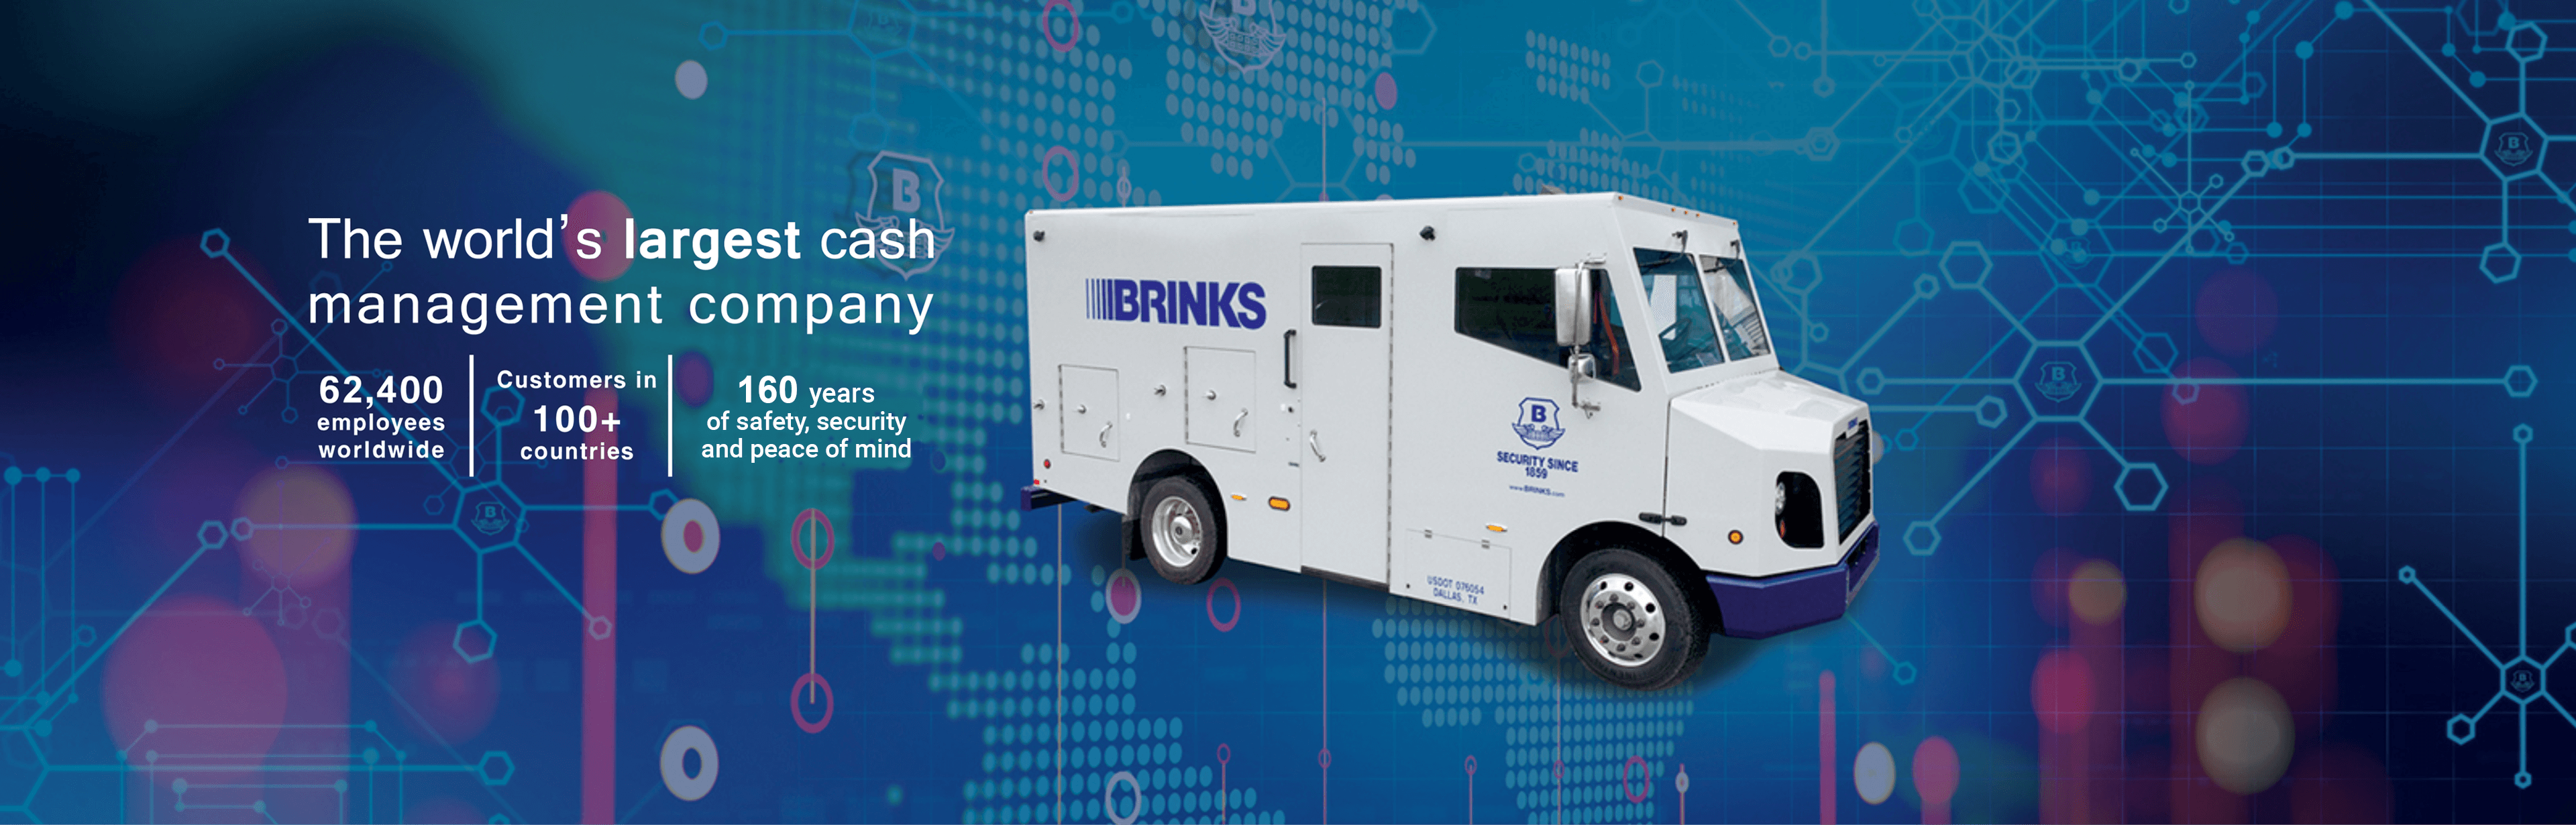 Brink's - Secure Logistics, Cash Management, Security Services